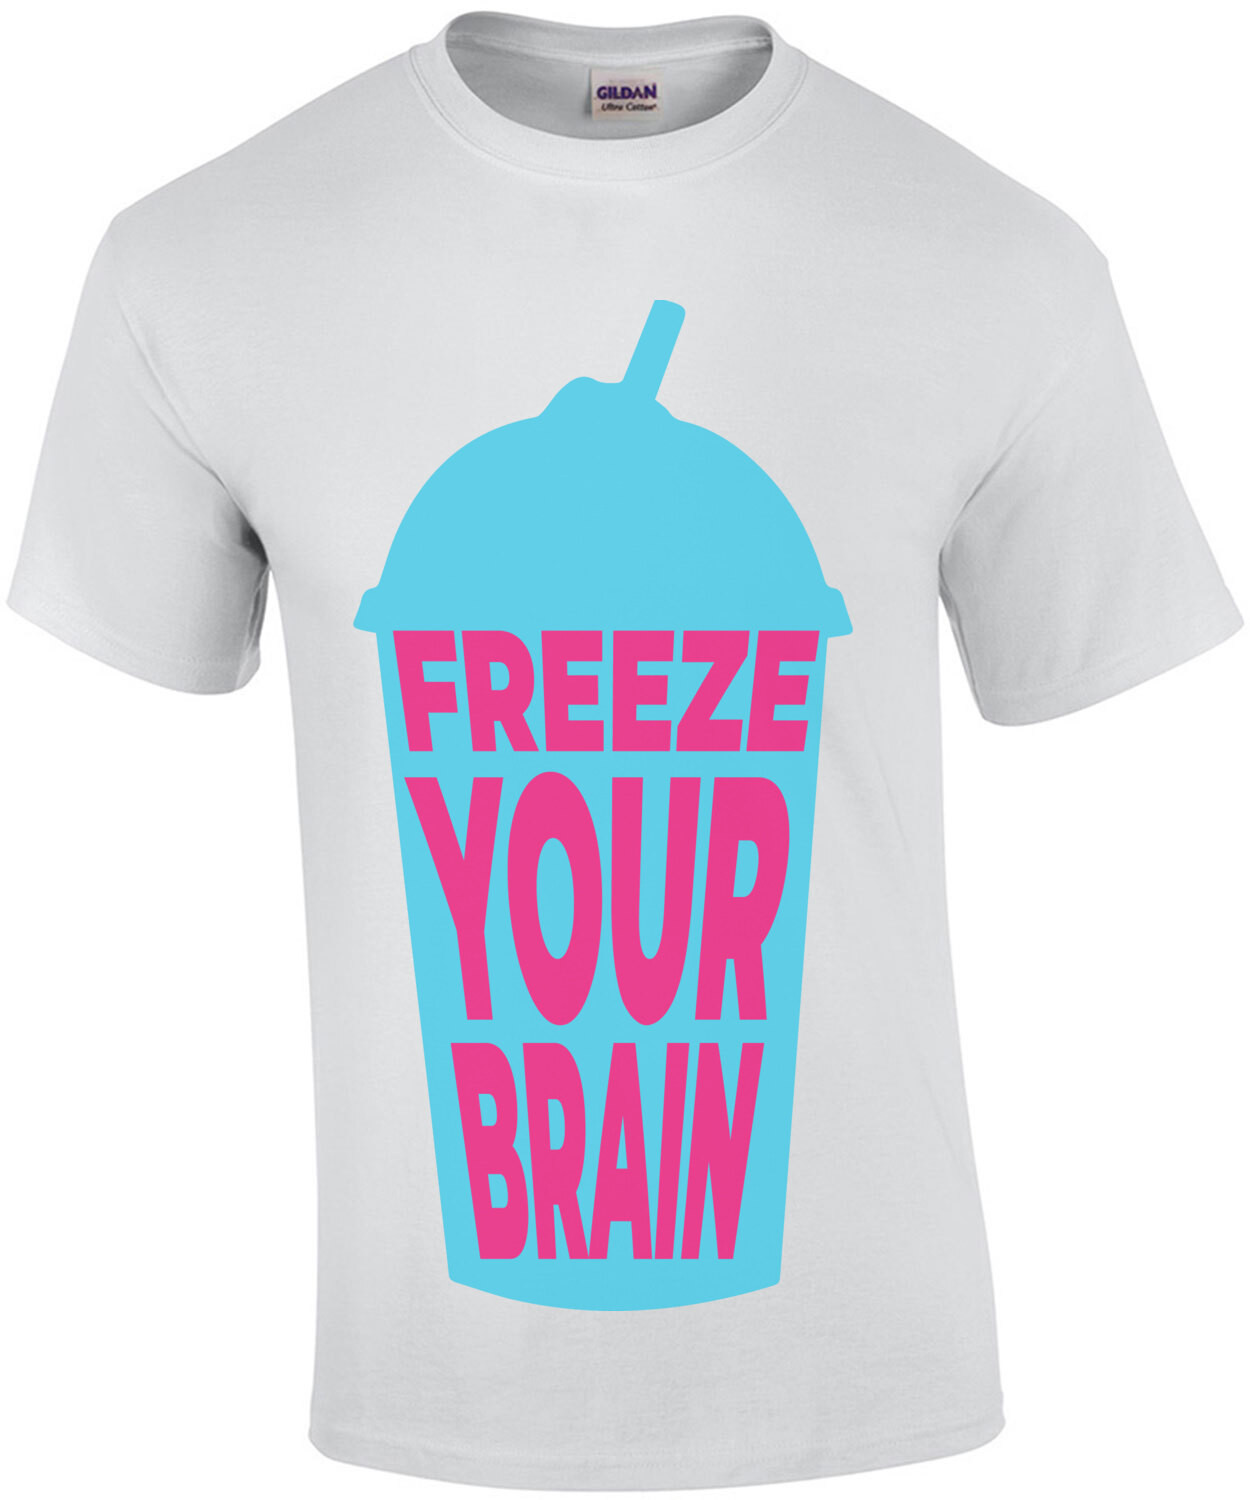 Freeze your brain - Heathers 80's T-Shirt